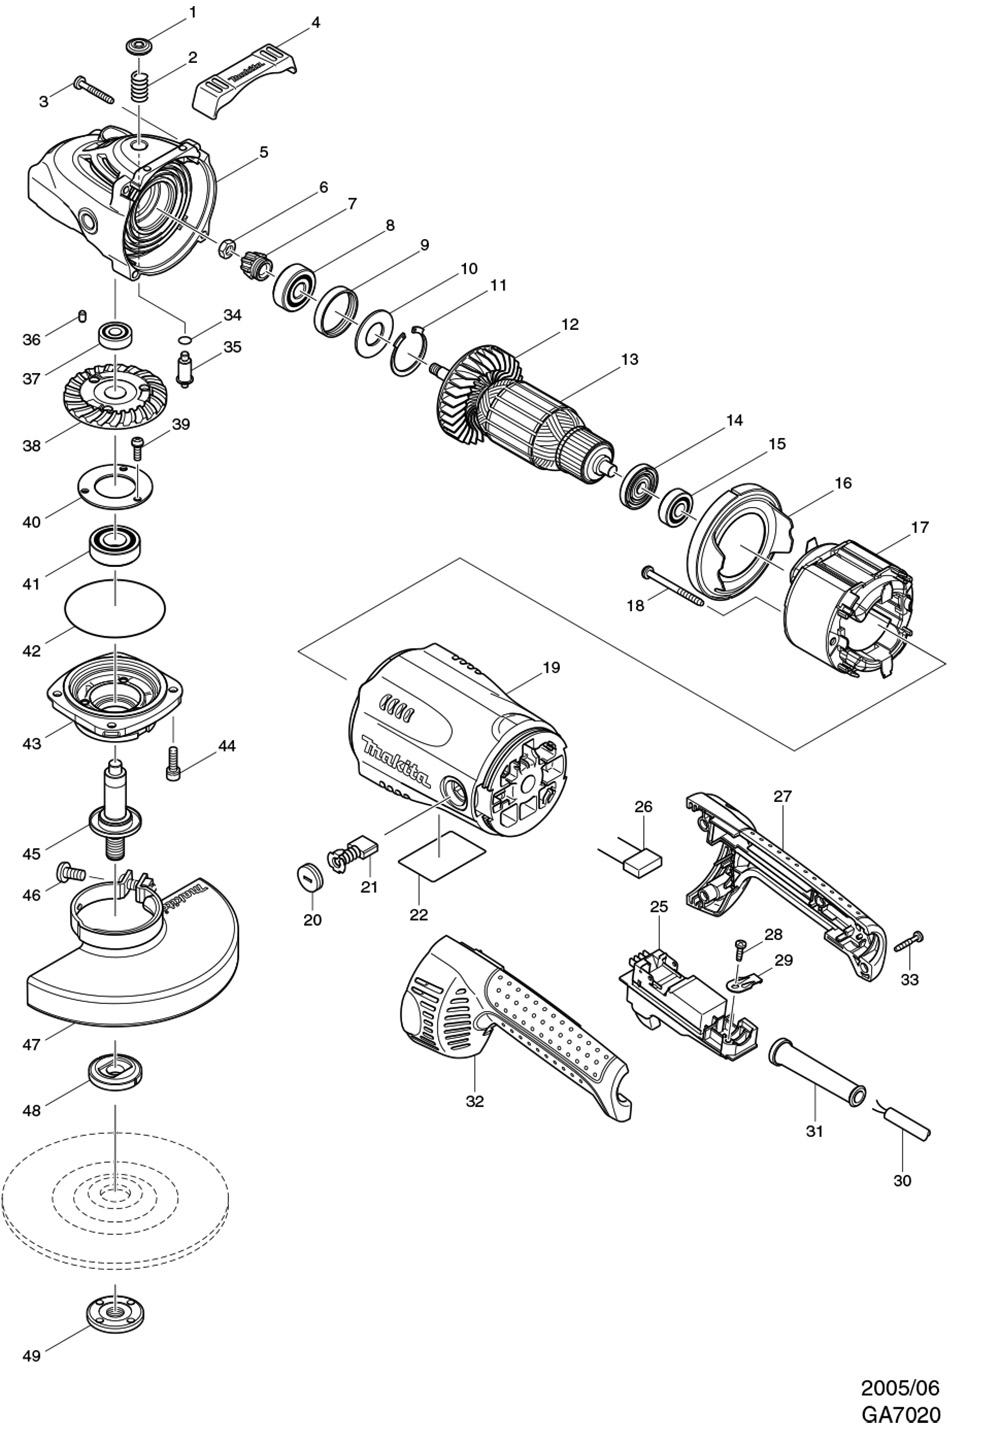 Star Generator Replacement Parts Motor Repalcement Parts And Diagram